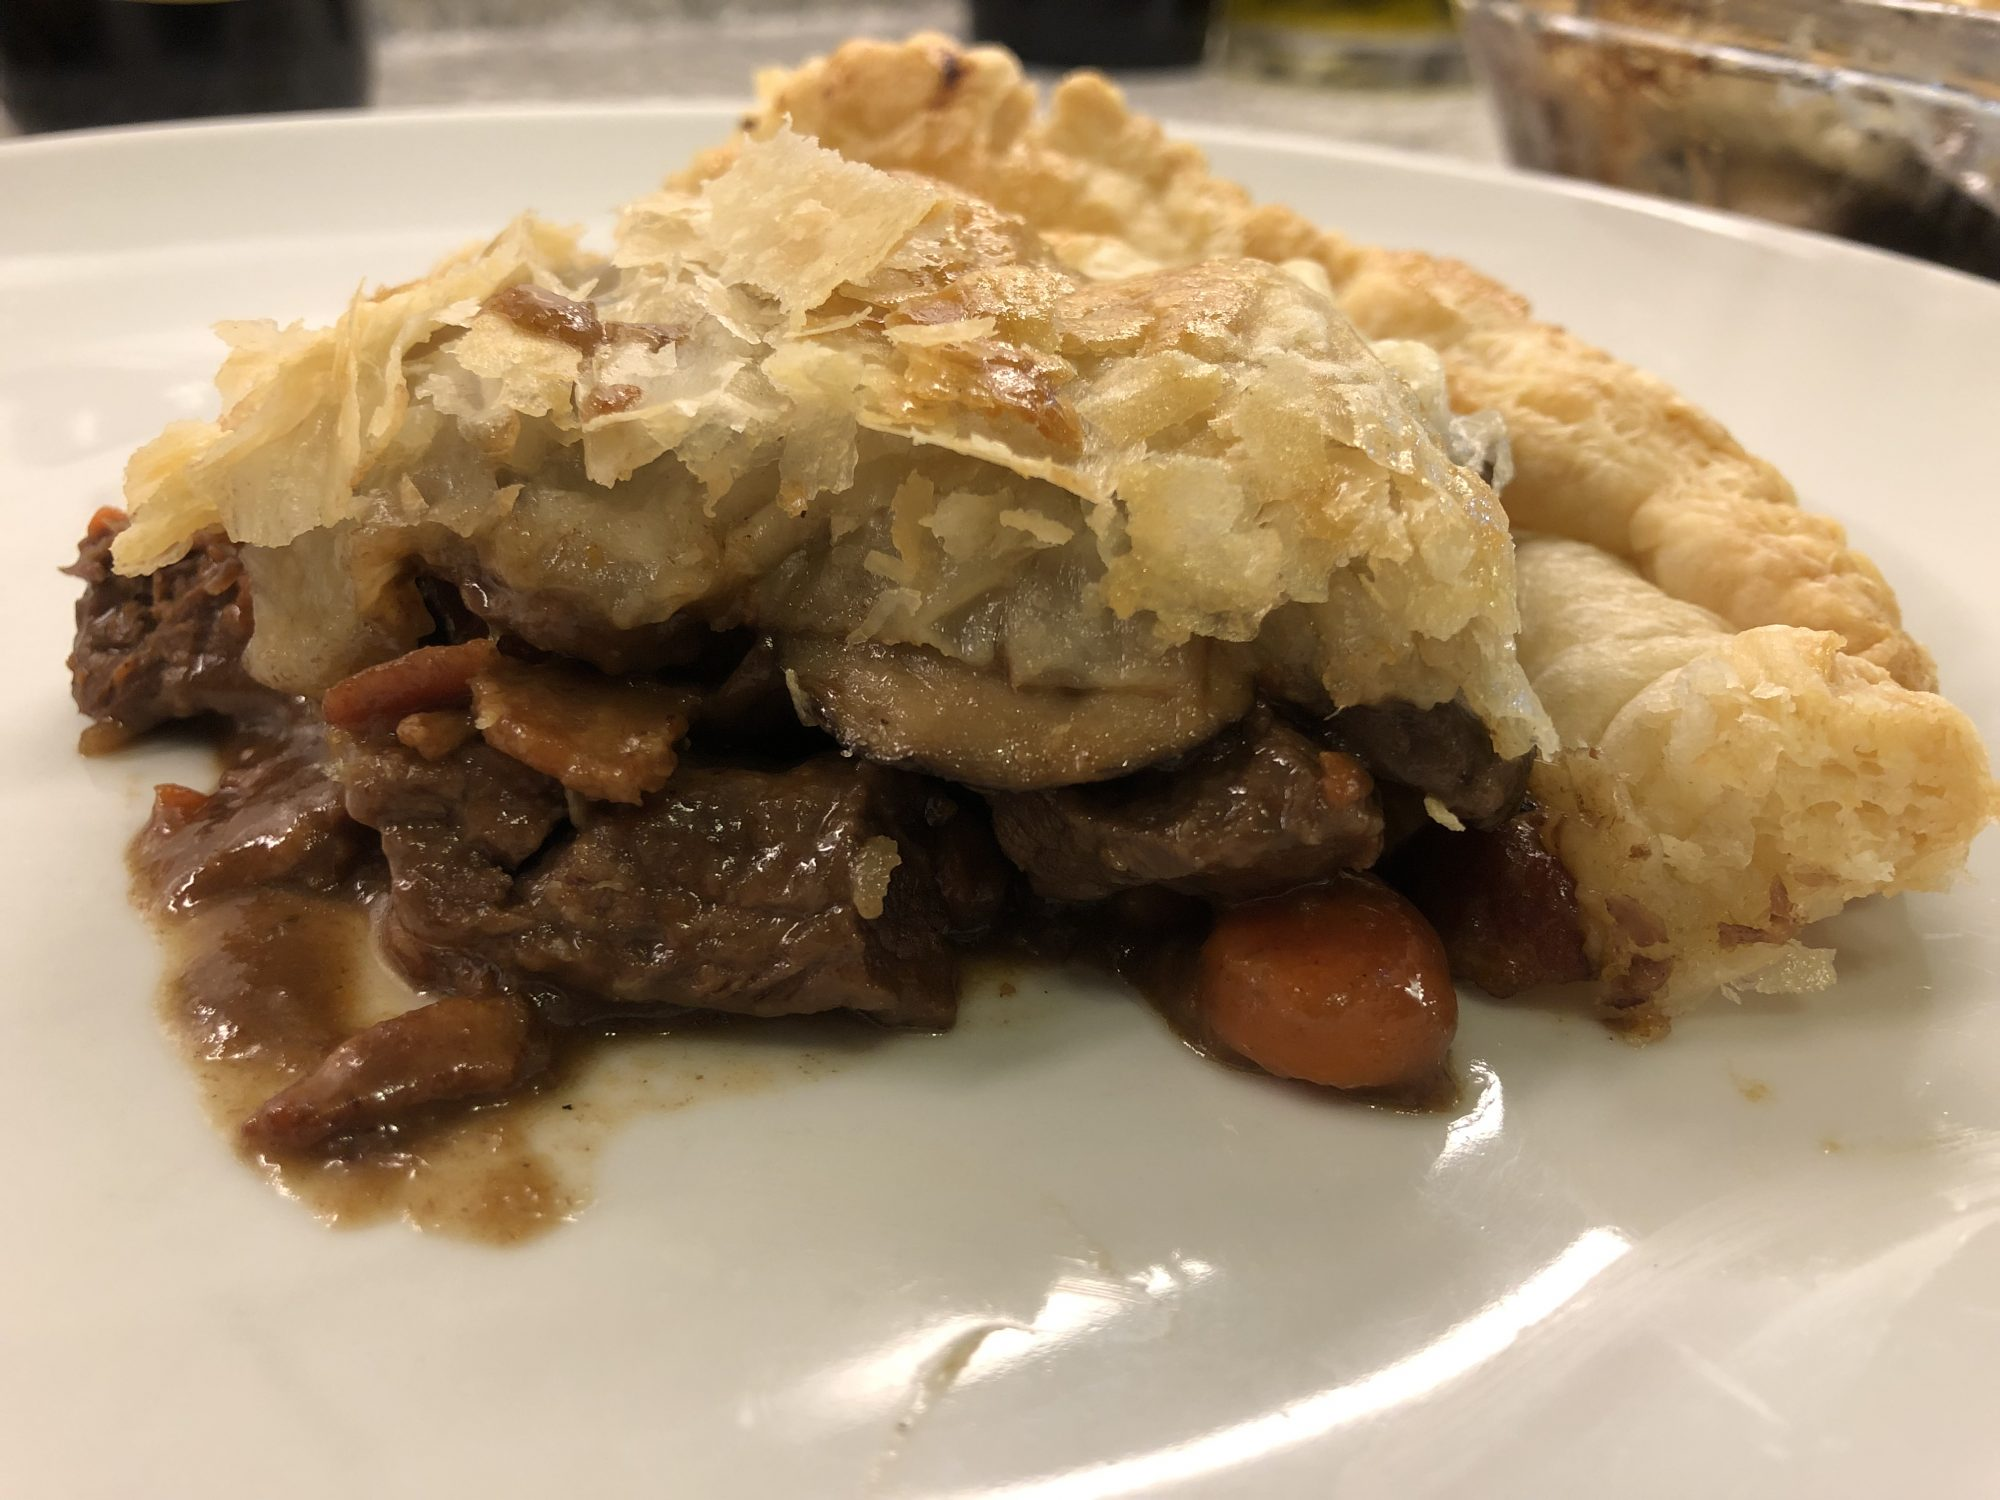 Slice of beef and mushroom pie with flaky crust